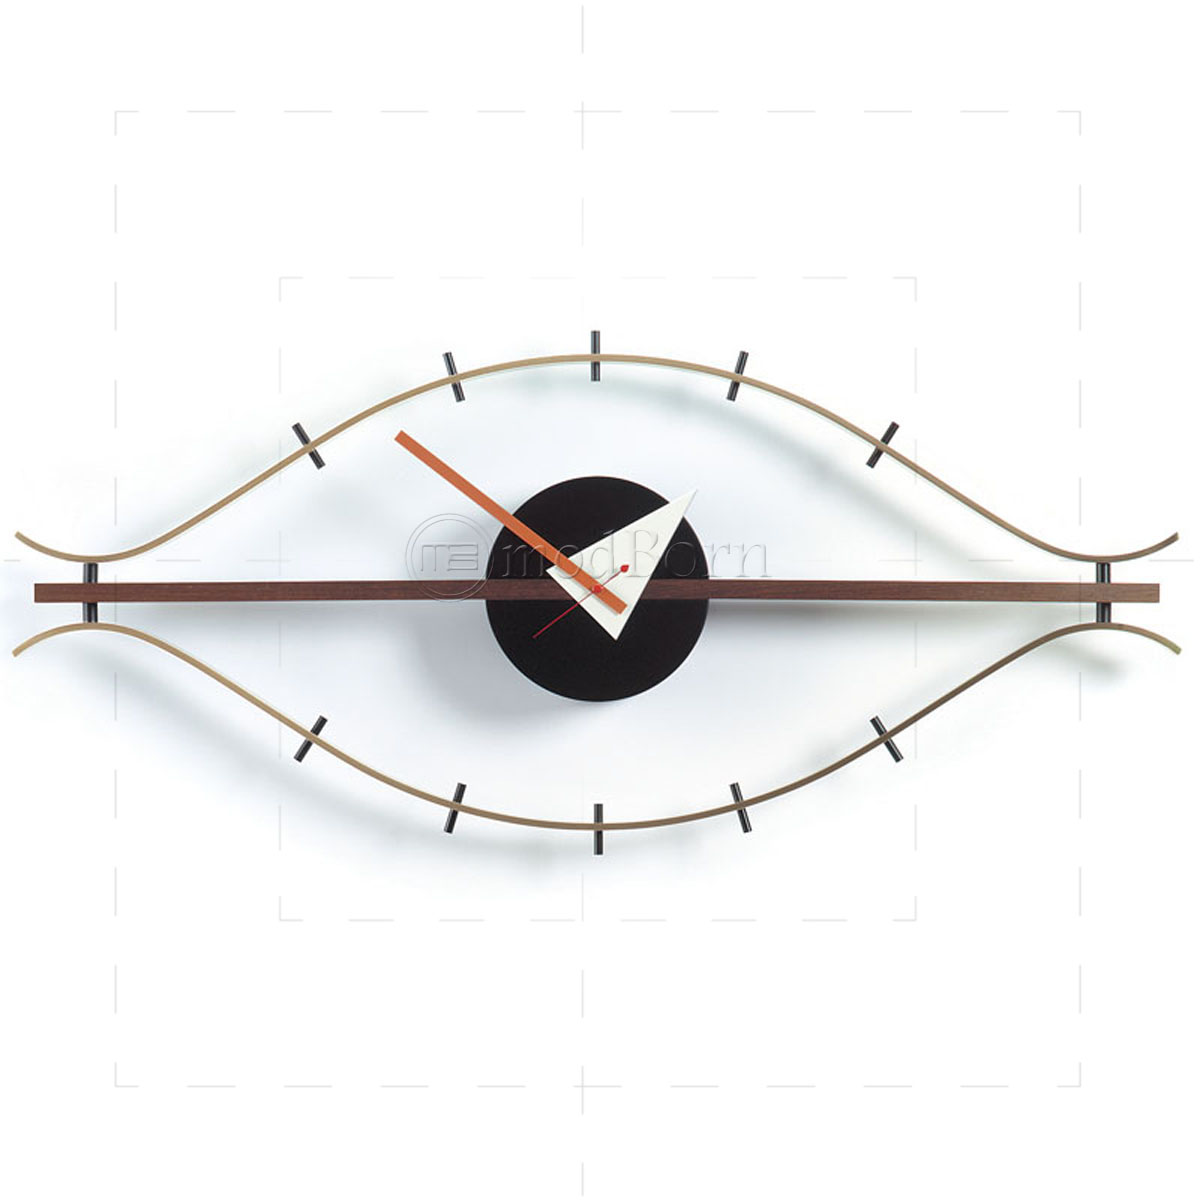 george nelson style eye wall clock. Black Bedroom Furniture Sets. Home Design Ideas